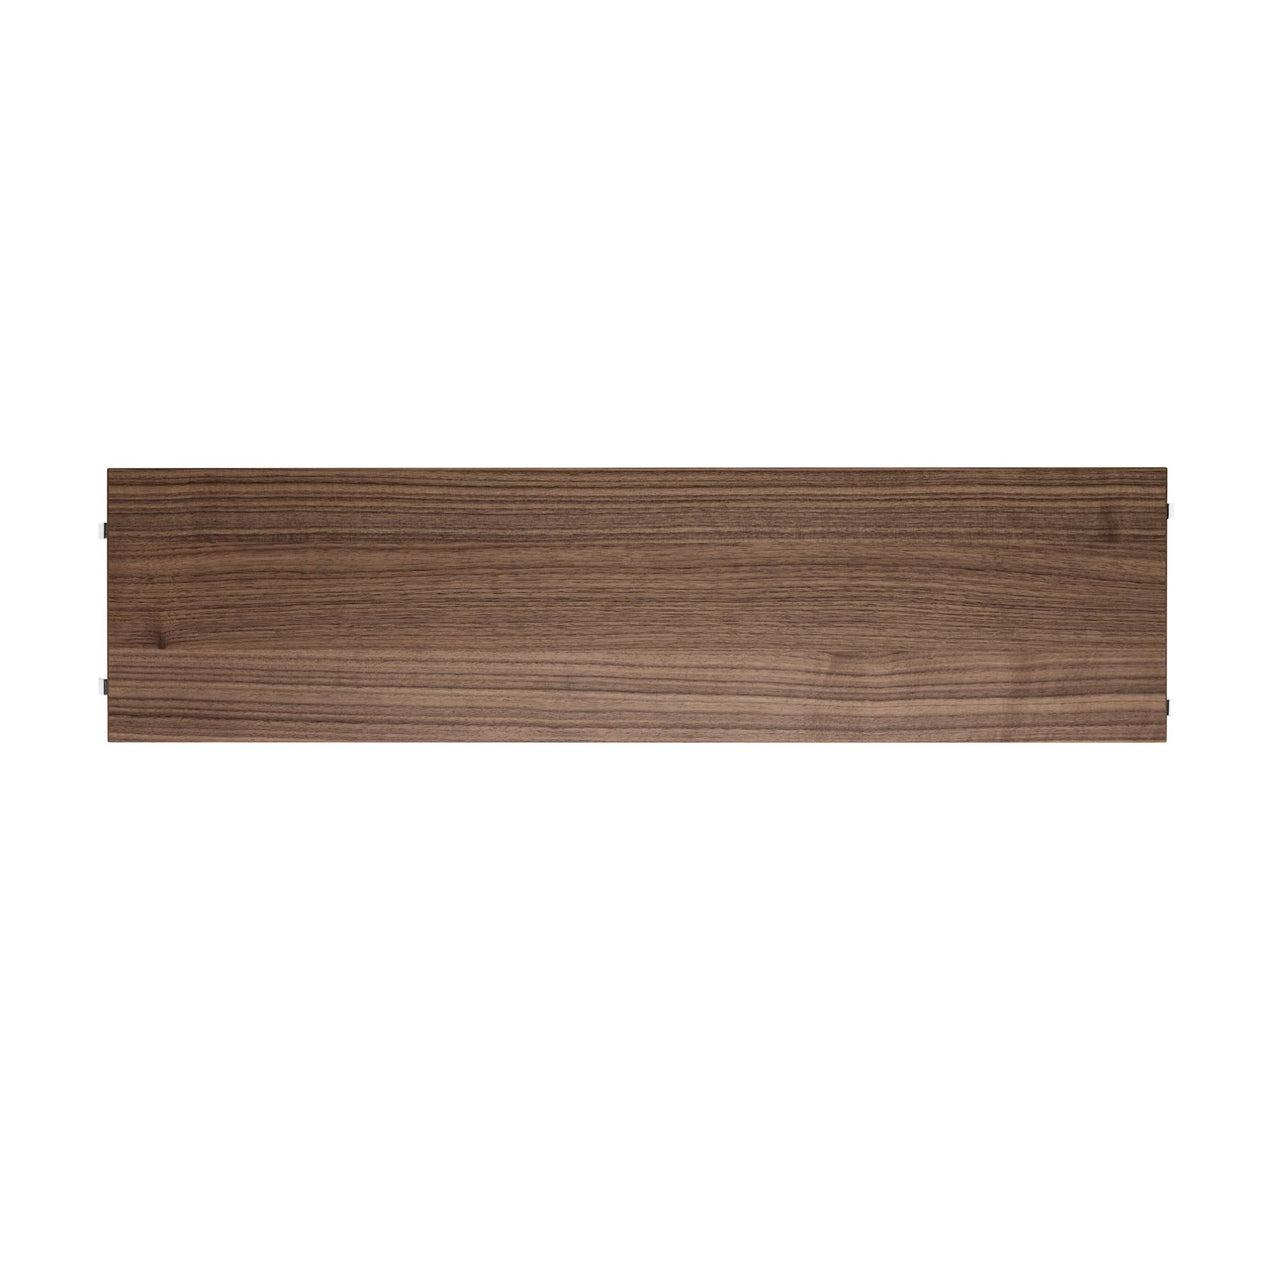 String System: Shelves (3-Pack) + 78 x 20 cm + Walnut